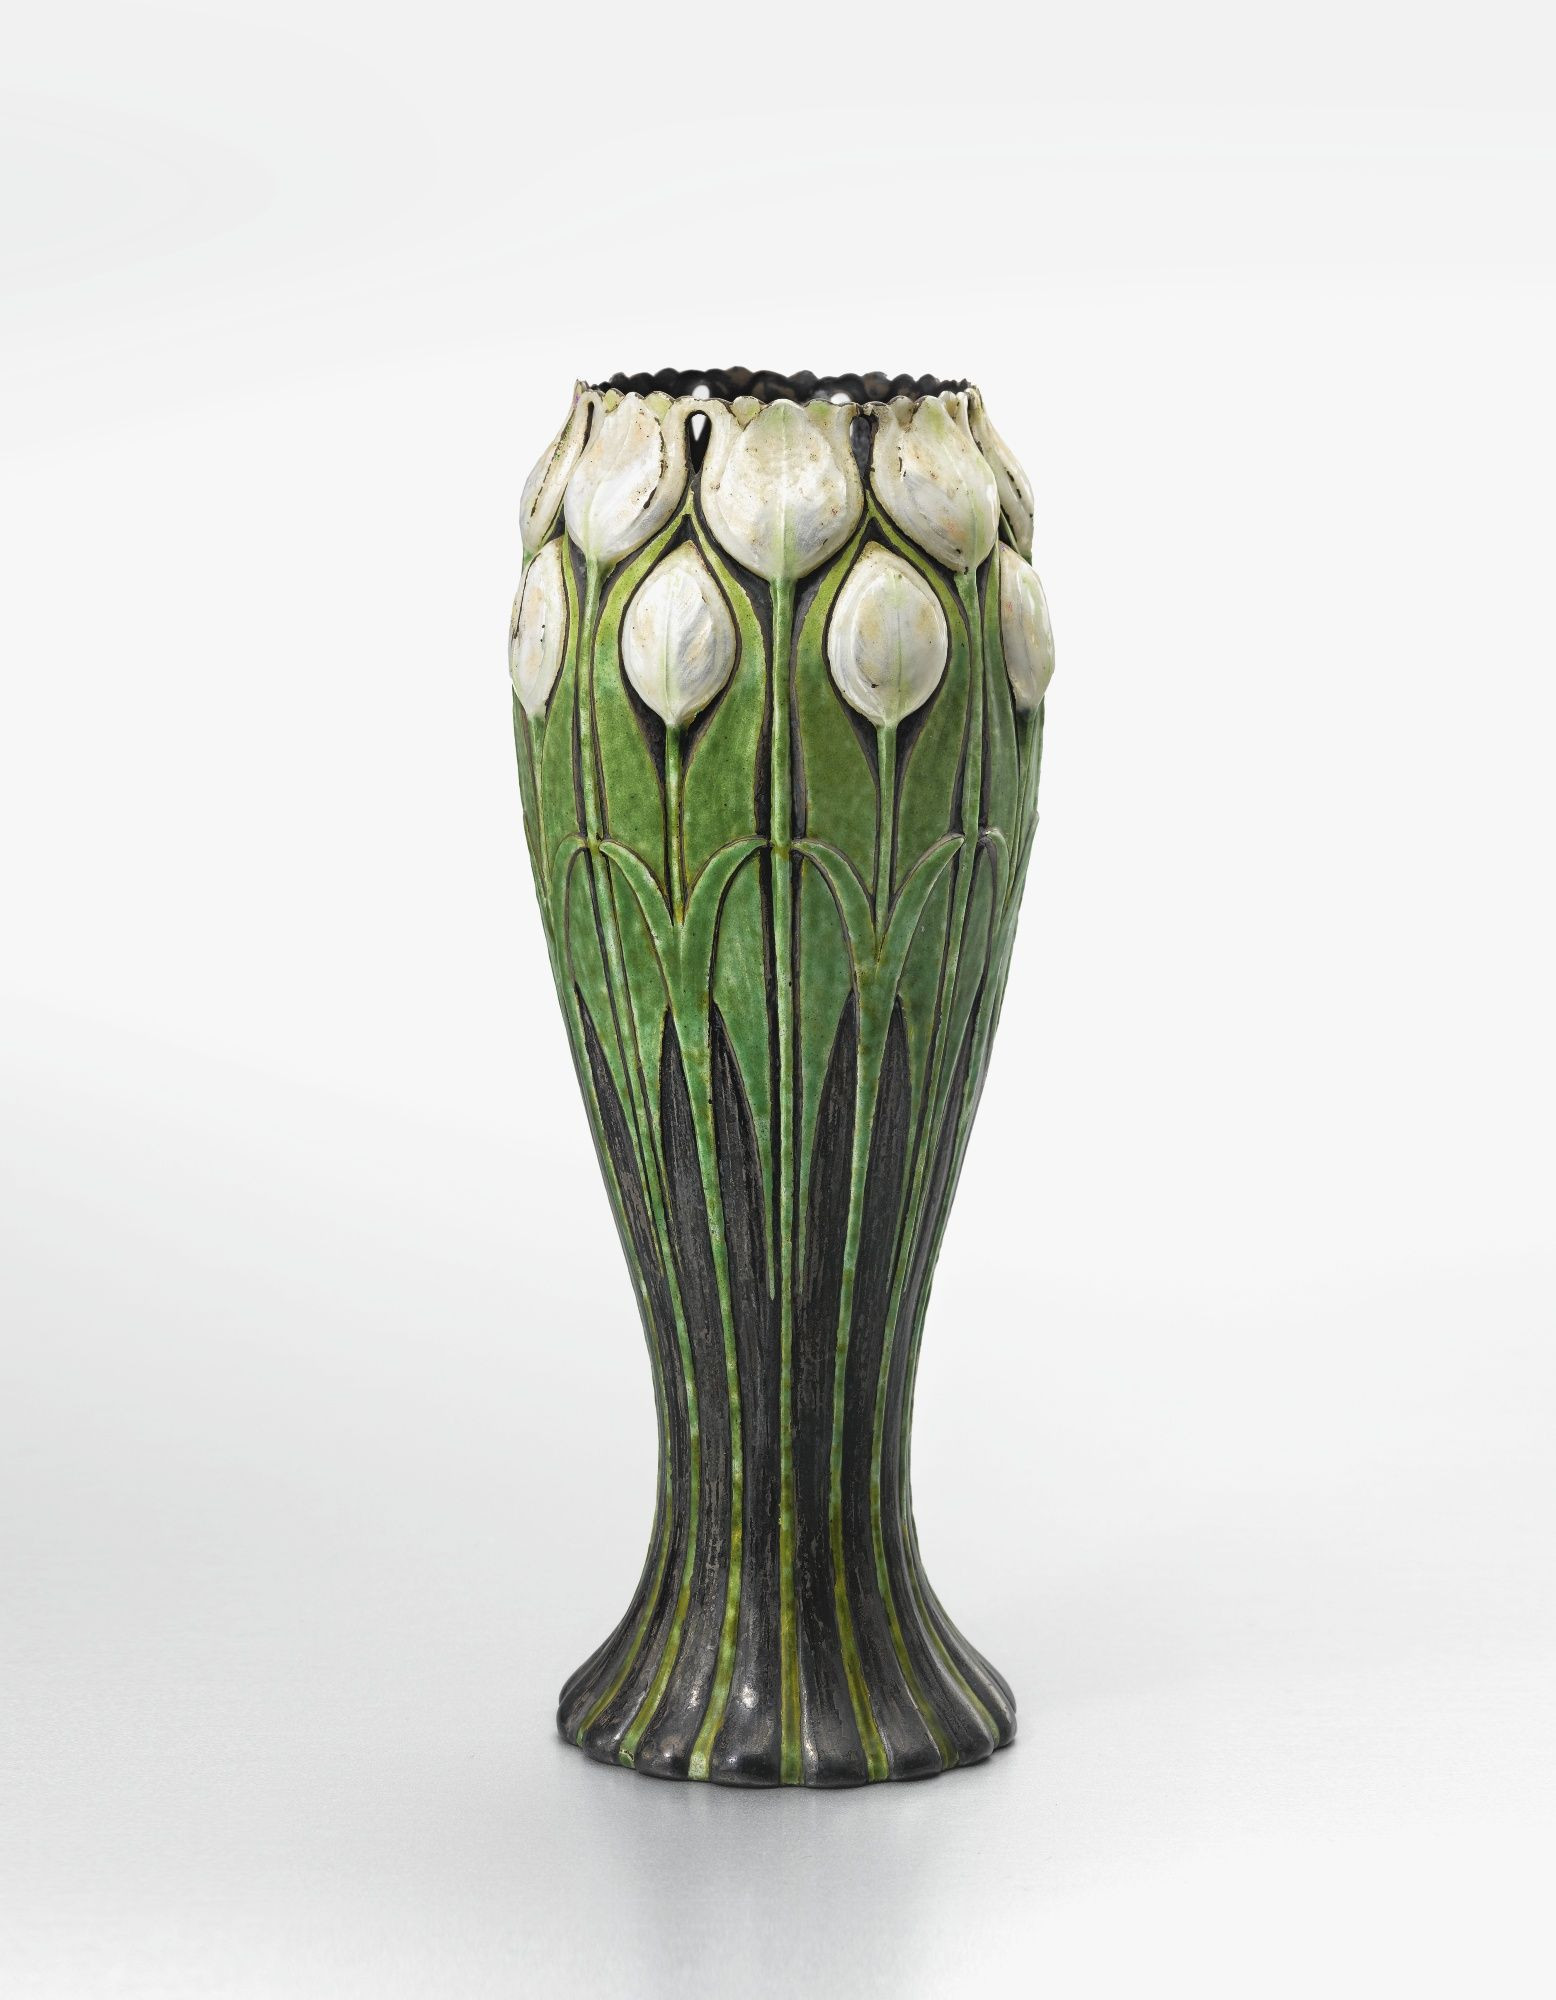 tall outdoor ceramic vases of tiffany co tulip vase impressed tiffany co 16568 makers 4105 with tulip vase impressed tiffany co 16568 makers